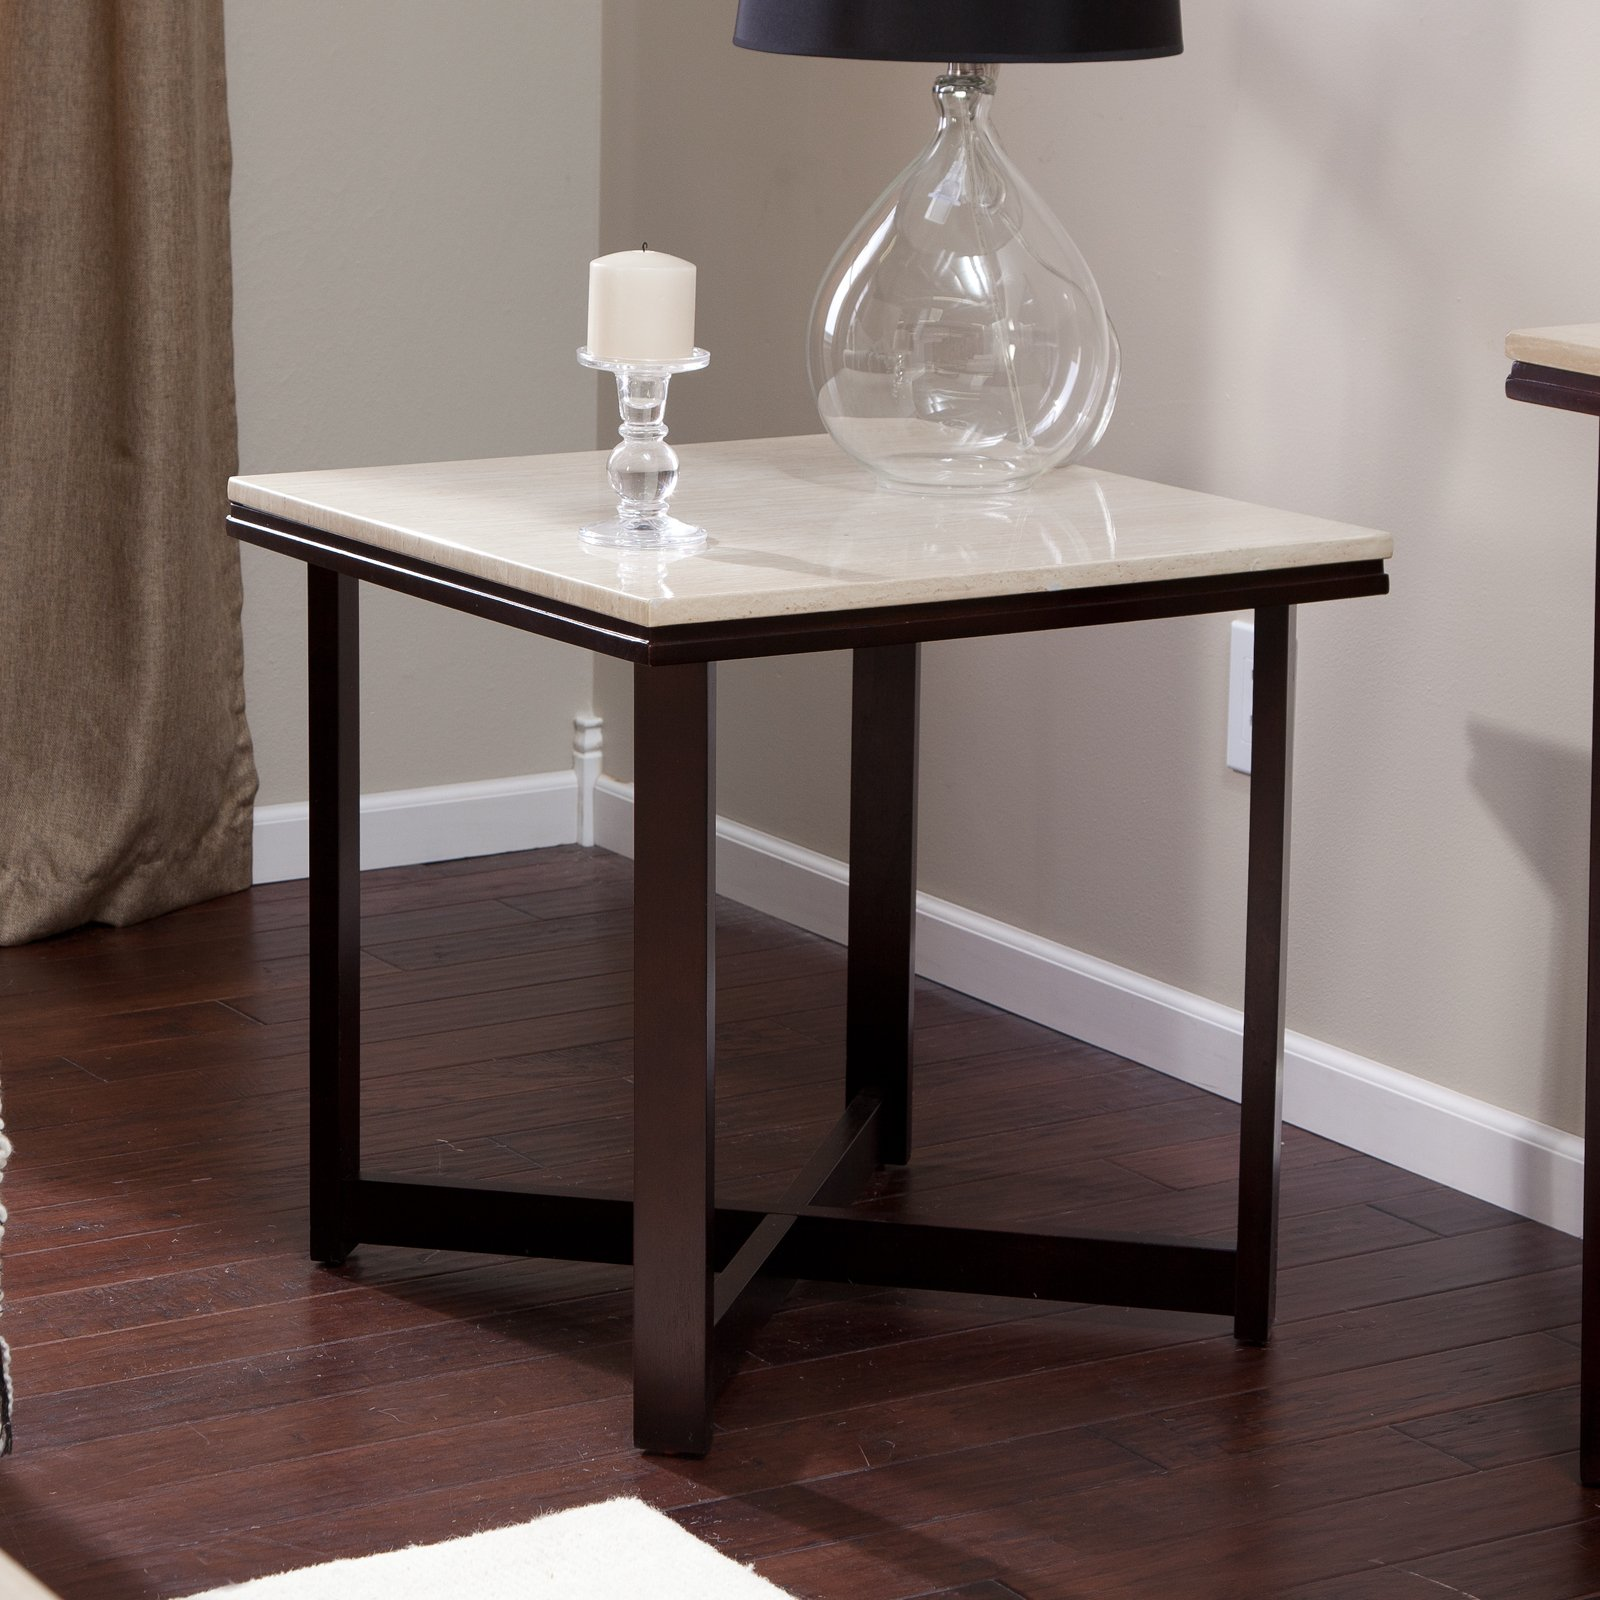 furniture living room end tables simple and beautiful hungonu america beltran piece traditional faux coffee table mini accent low cabinet target small leather sets laminate floor